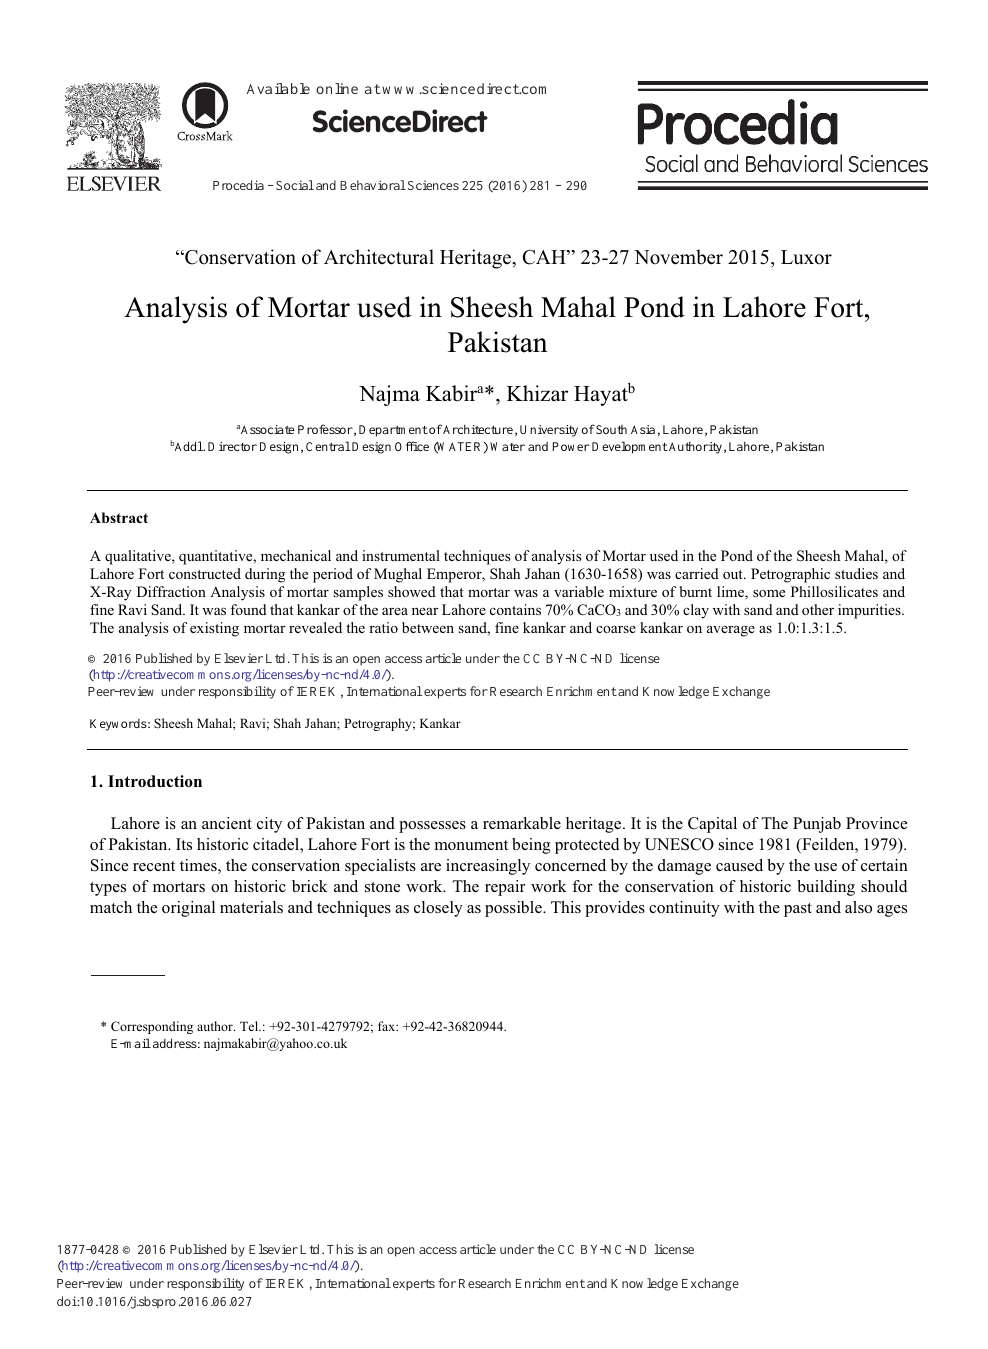 Analysis of Mortar Used in Sheesh Mahal Pond in Lahore Fort